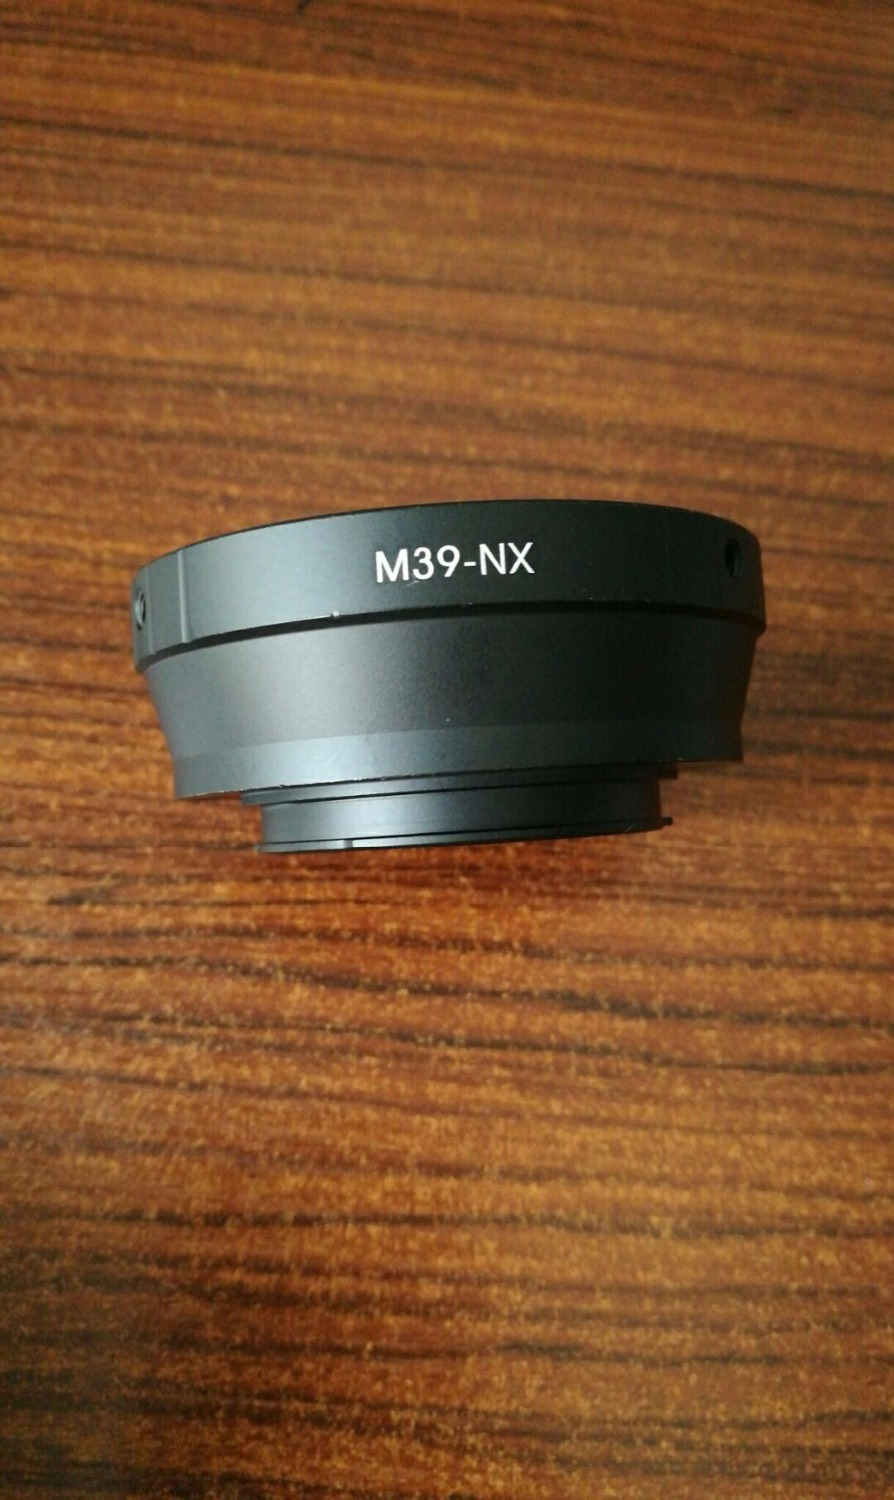 Lens Adapter for Leica M39 Mount Lens Convert for Samsung NX Mount Camera M39-NX